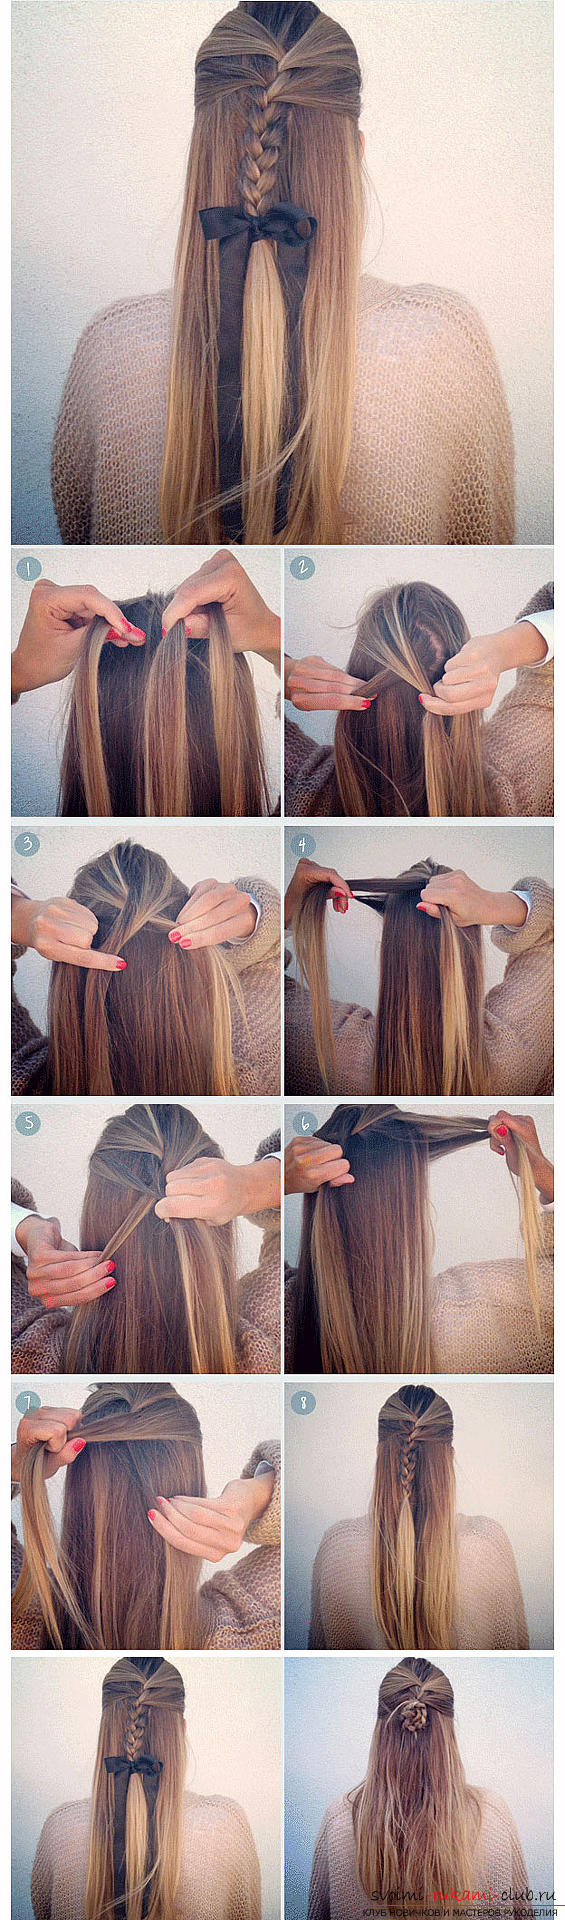 Tips and advice on creating original hairstyles in school for 5 minutes with your own hands .. Photo # 2